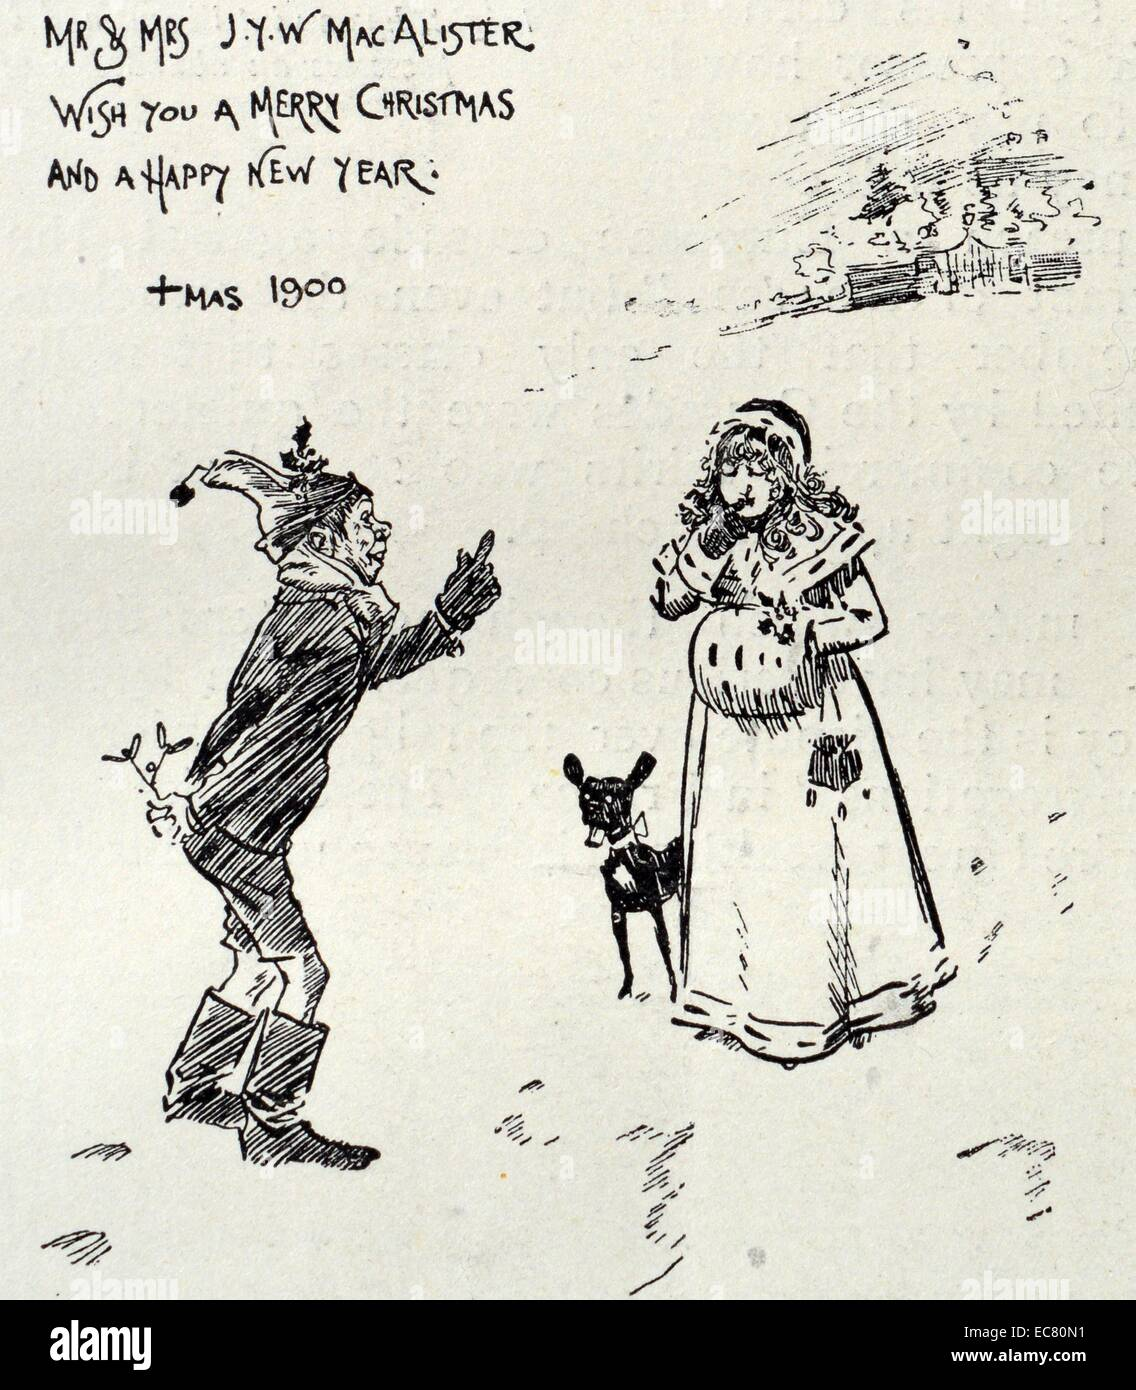 Hand drawn Christmas card designed by Phil May (1864-1903) an English caricaturist. Dated 1900 - Stock Image